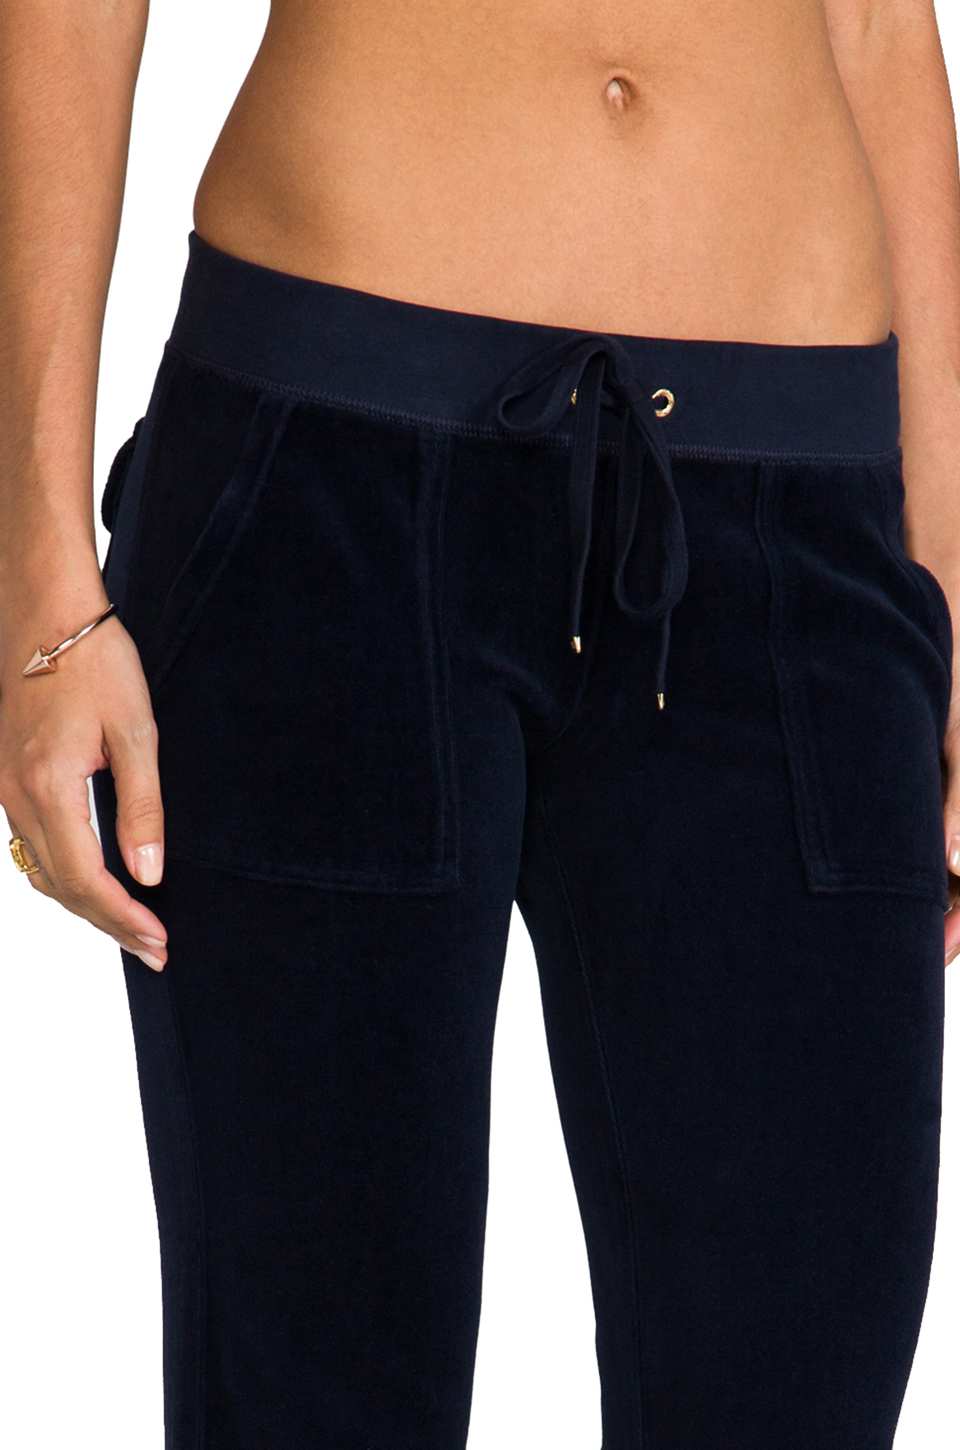 Juicy Couture Velour Bootcut Pant with Snap Pockets in Regal